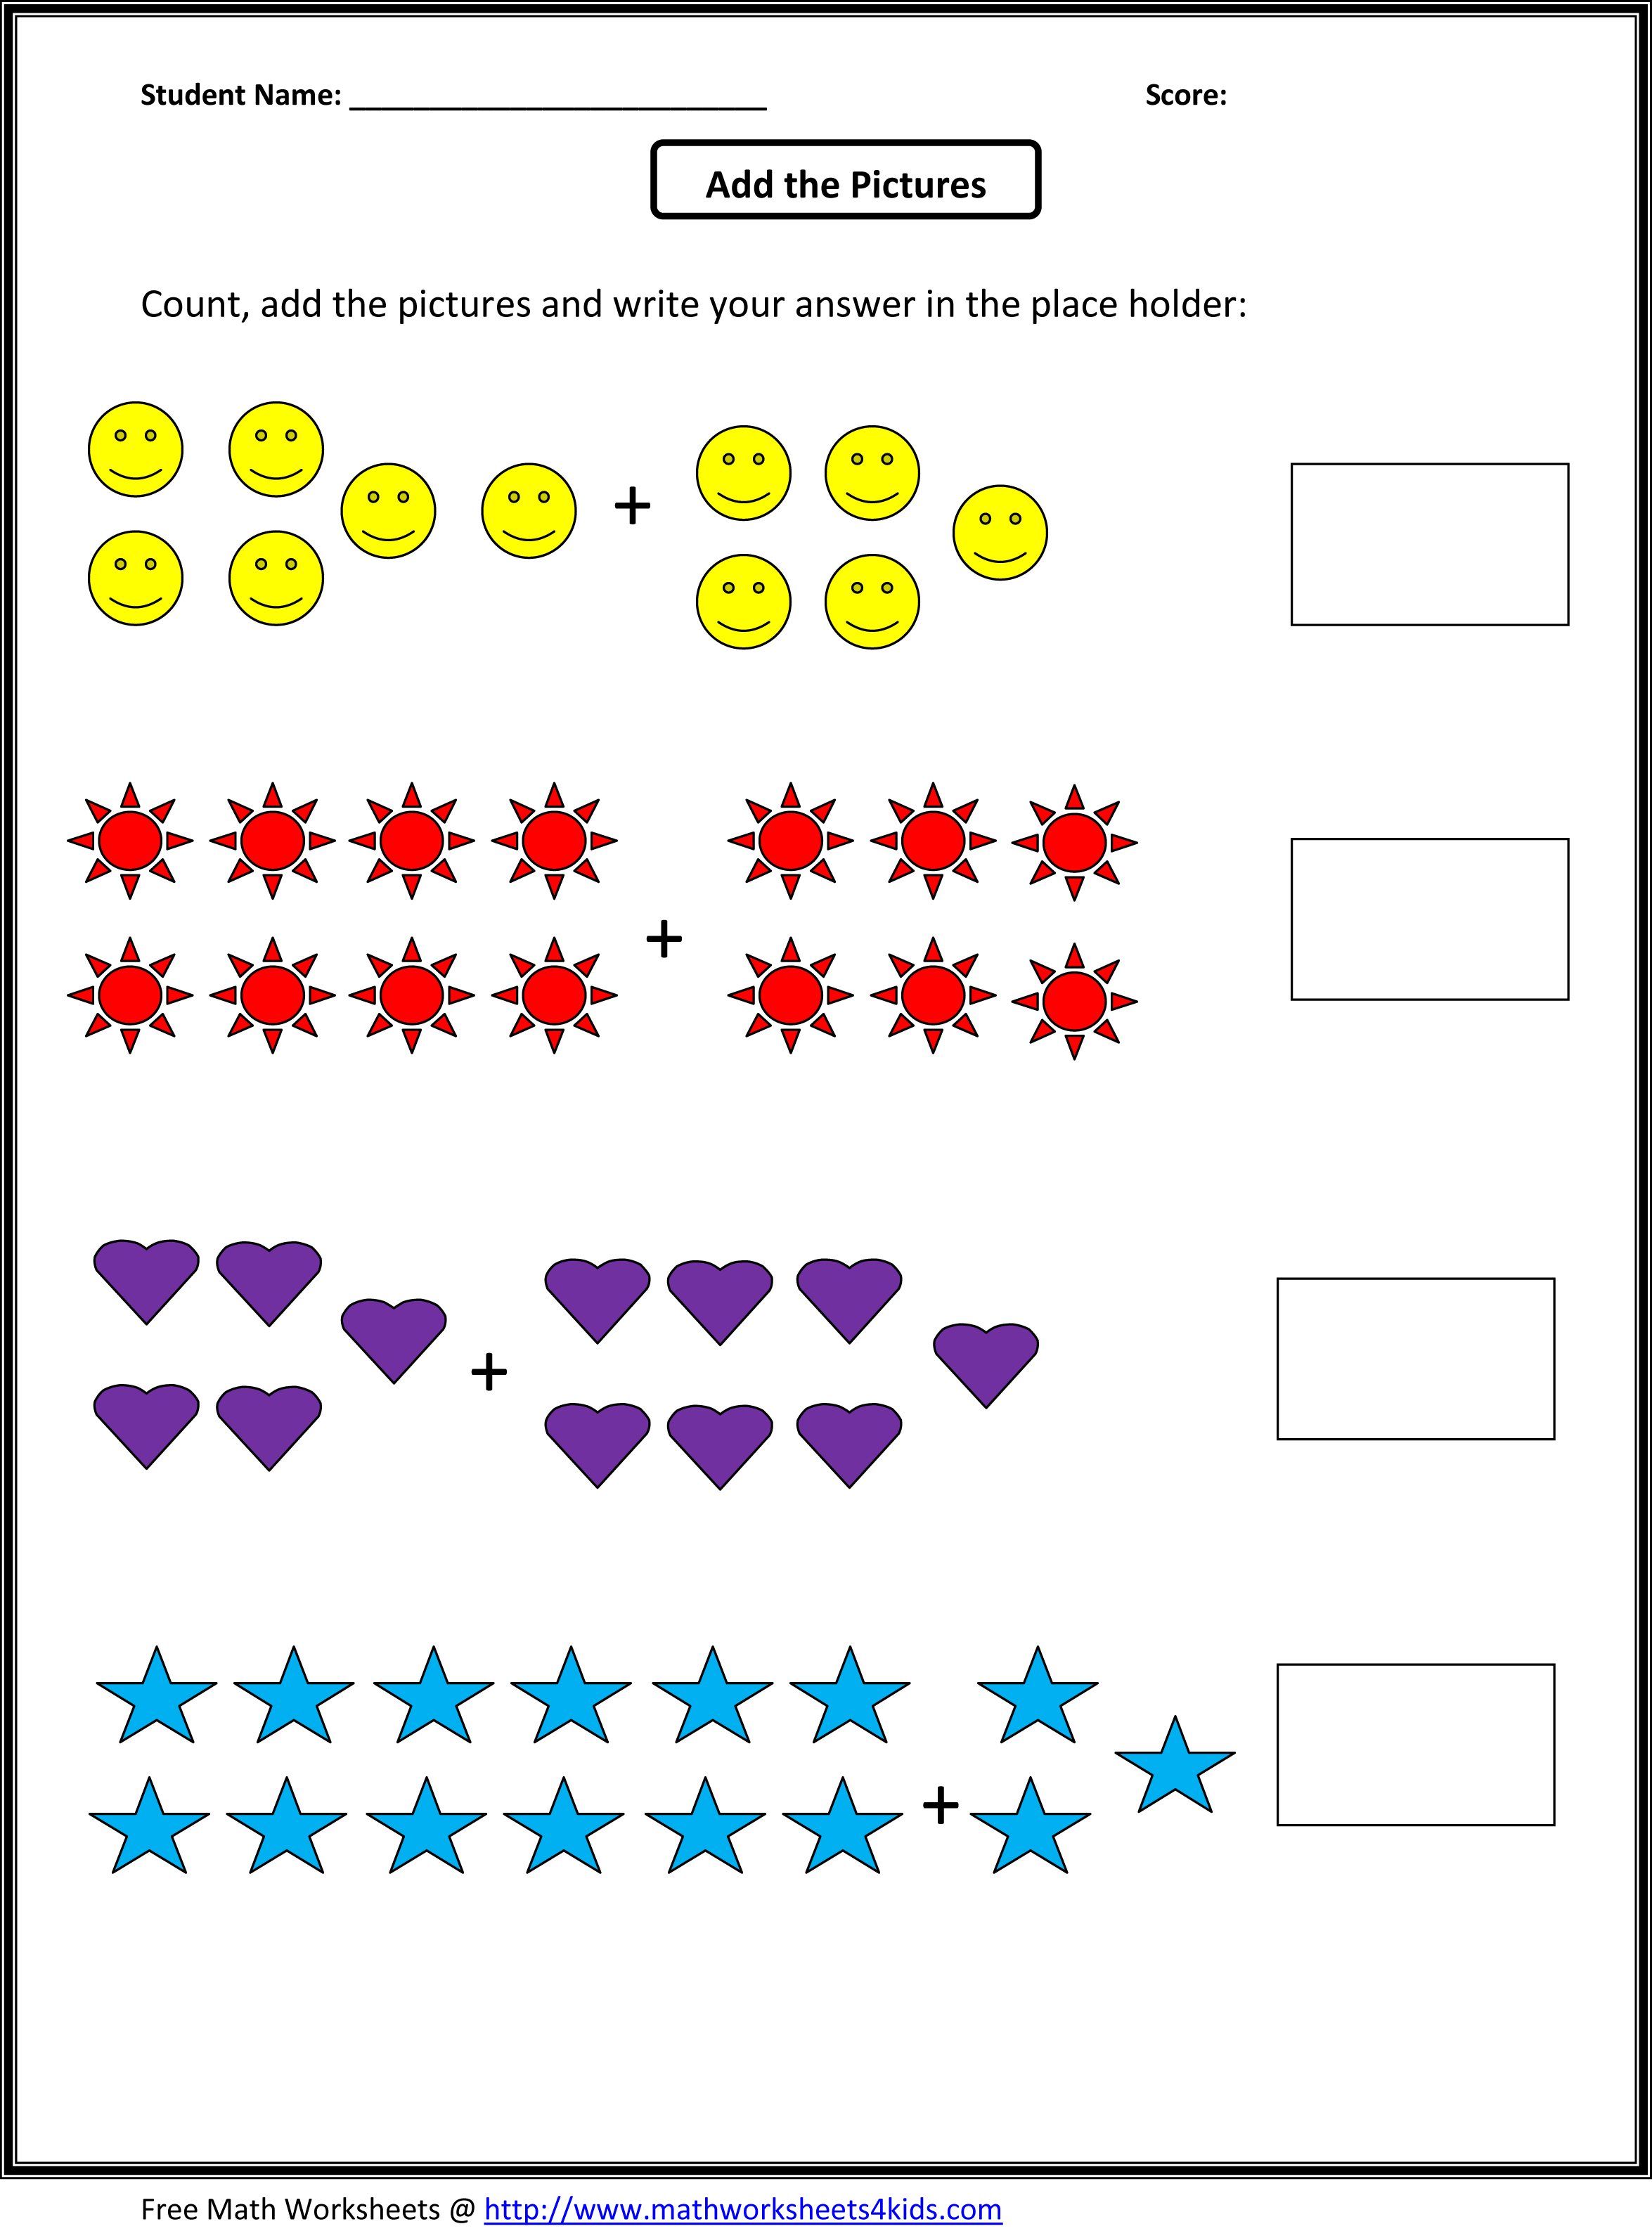 Weirdmailus  Splendid Grade  Maths Worksheet  Reocurent With Excellent Math Worksheets For St Grade Free  Reocurent With Astonishing Converting Imperial Units Worksheet Also Rd Grade Drawing Conclusions Worksheets In Addition Free Number Worksheets For Preschool And Worksheets On Nouns Verbs And Adjectives As Well As Law Of Motion Worksheet Additionally Conservation Of Energy Worksheets From Reocurentcom With Weirdmailus  Excellent Grade  Maths Worksheet  Reocurent With Astonishing Math Worksheets For St Grade Free  Reocurent And Splendid Converting Imperial Units Worksheet Also Rd Grade Drawing Conclusions Worksheets In Addition Free Number Worksheets For Preschool From Reocurentcom